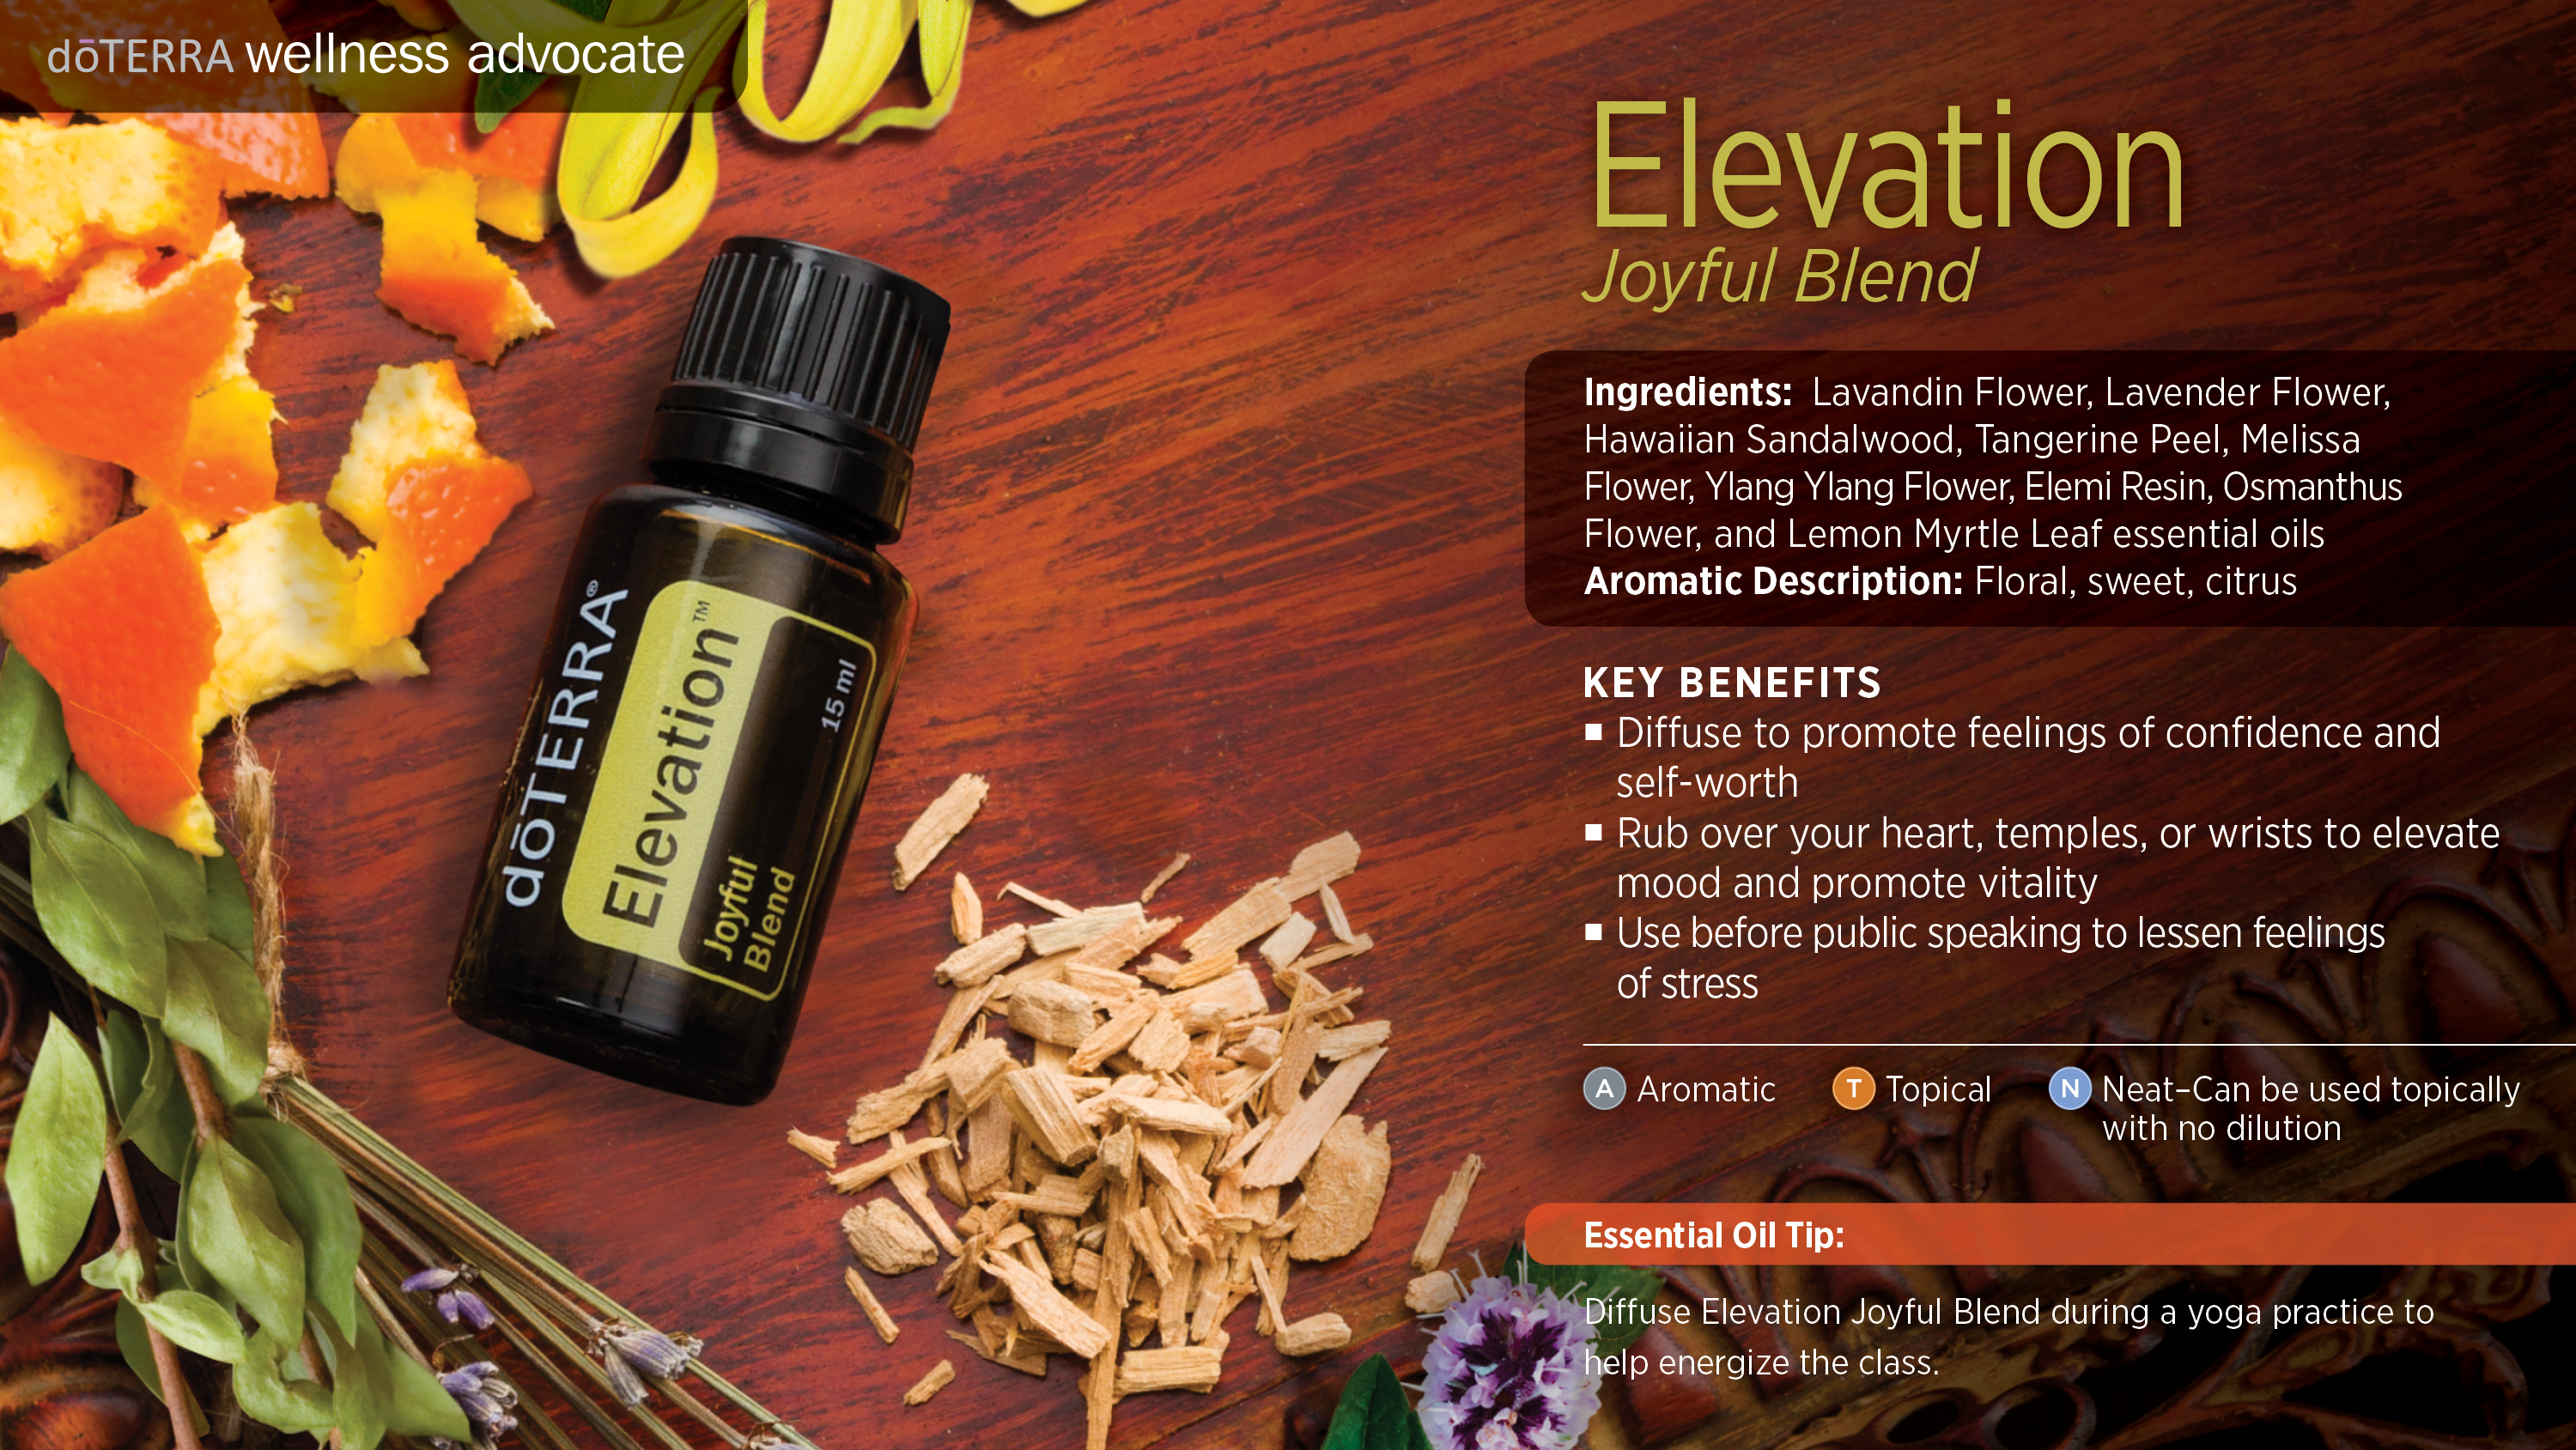 286049013807390624 likewise Young Living Essential Oils in addition Rvy80 Happy Fall Y All as well Product Information likewise Doterra Emotions. on lemon doterra product information page